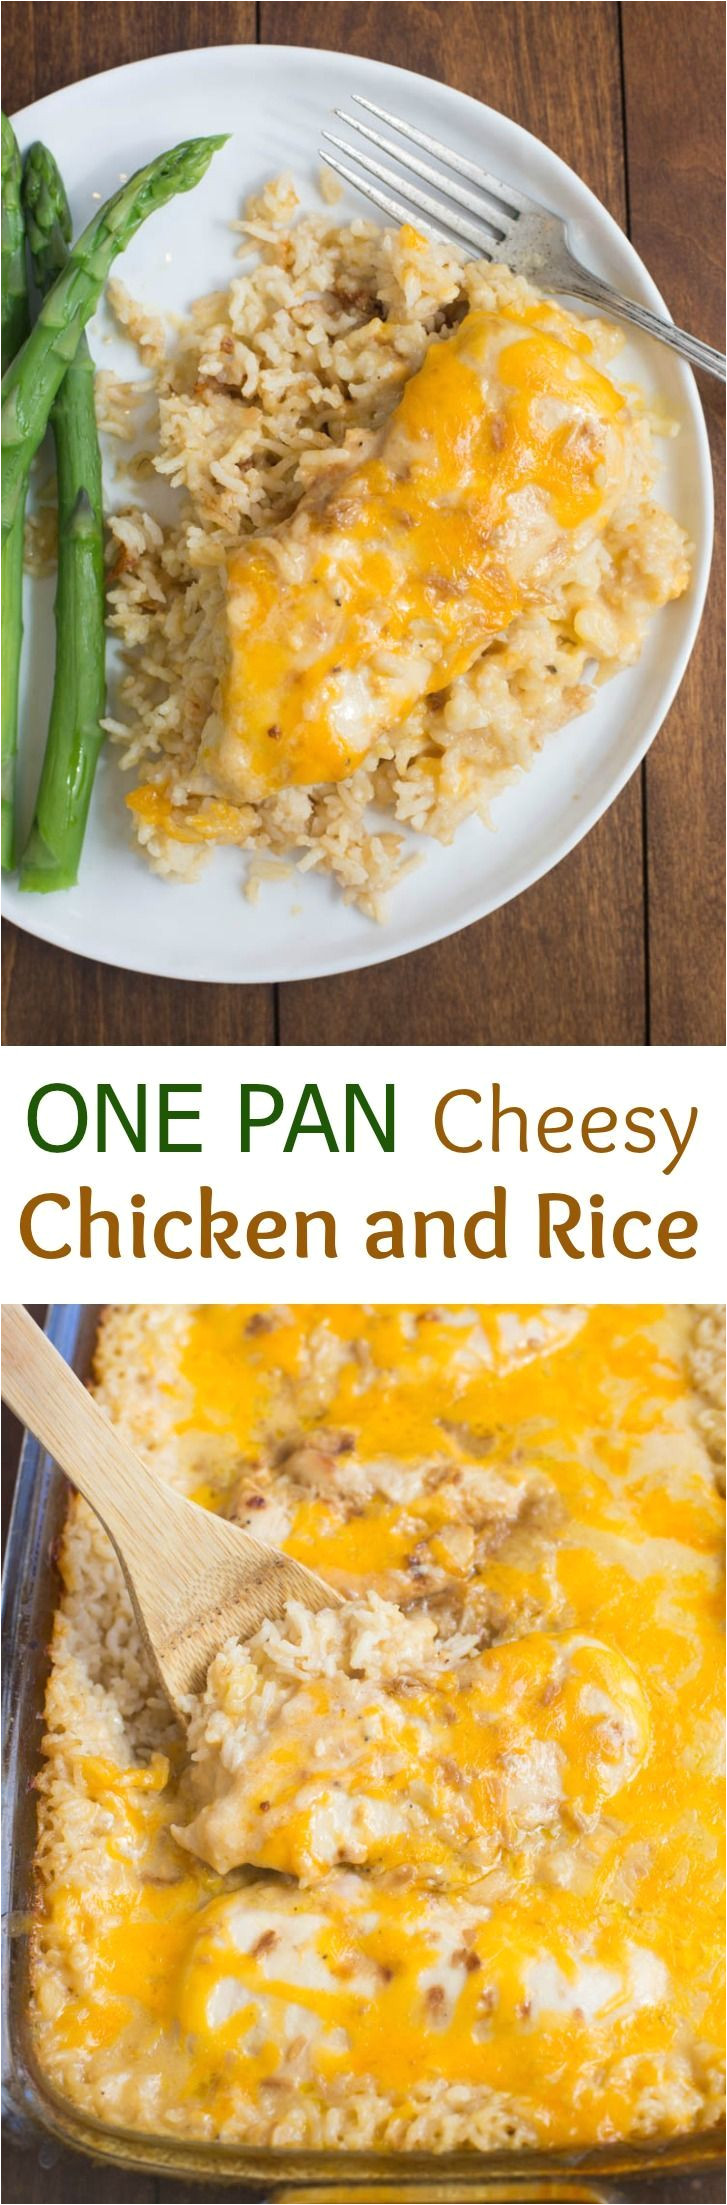 my family loves this easy one pan cheesy chicken and rice casserole just a few